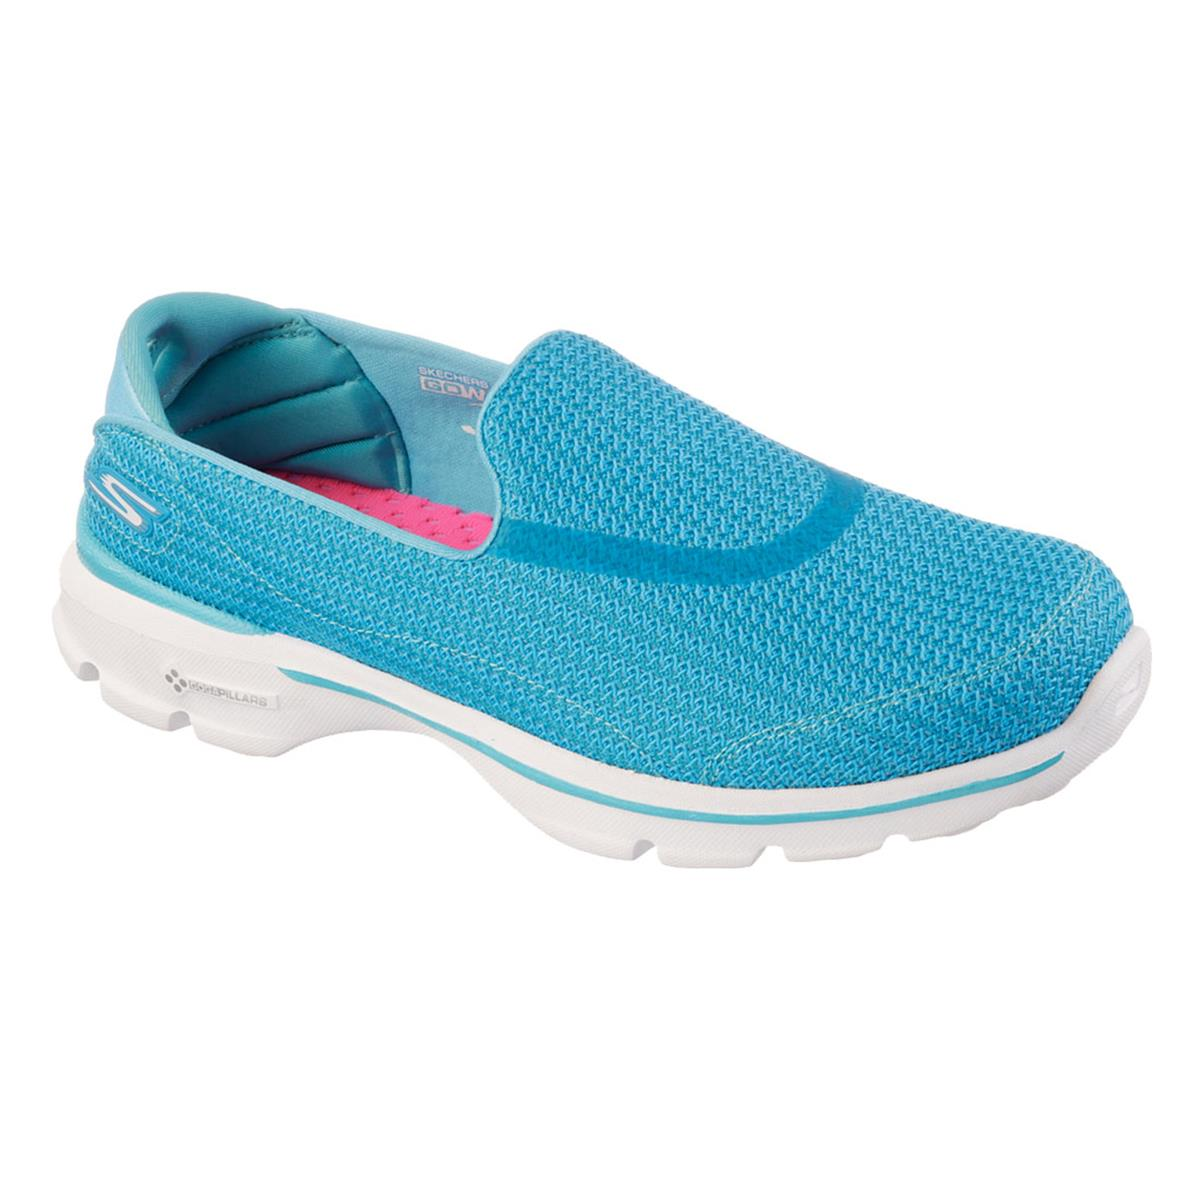 skechers gowalk 3 womens shoes turquoise direct running